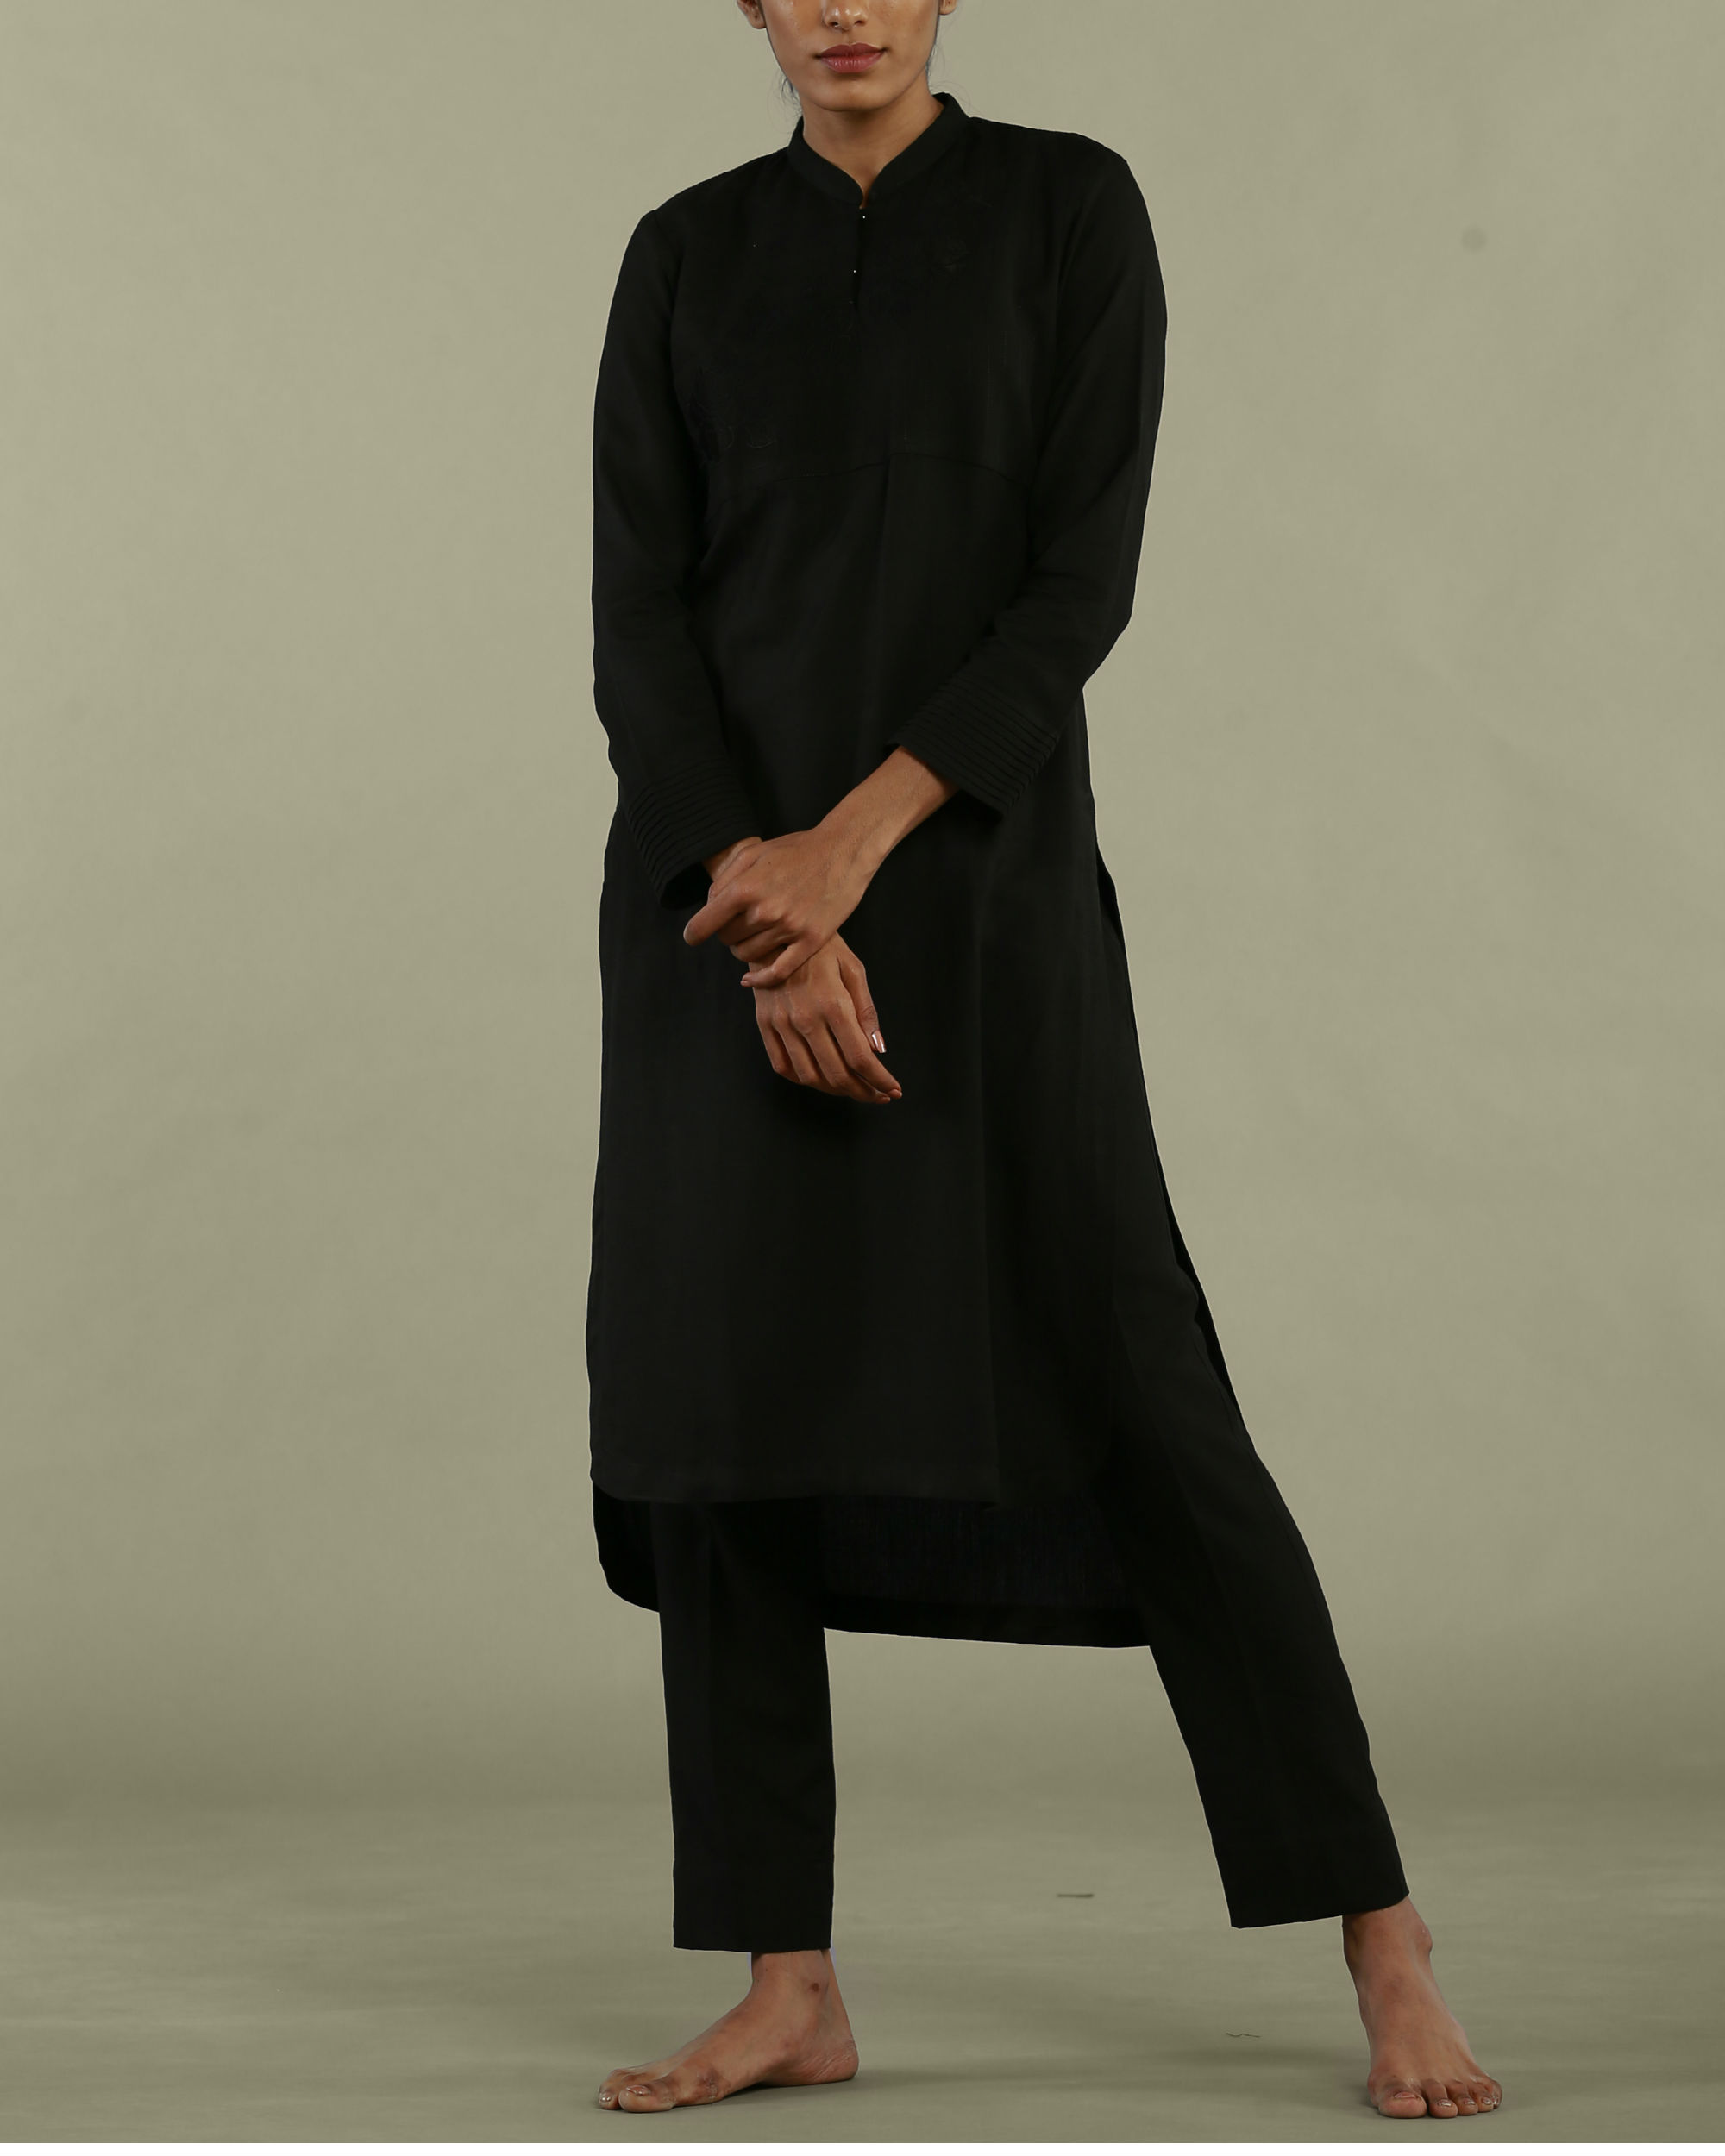 Black tunic with collared neckline